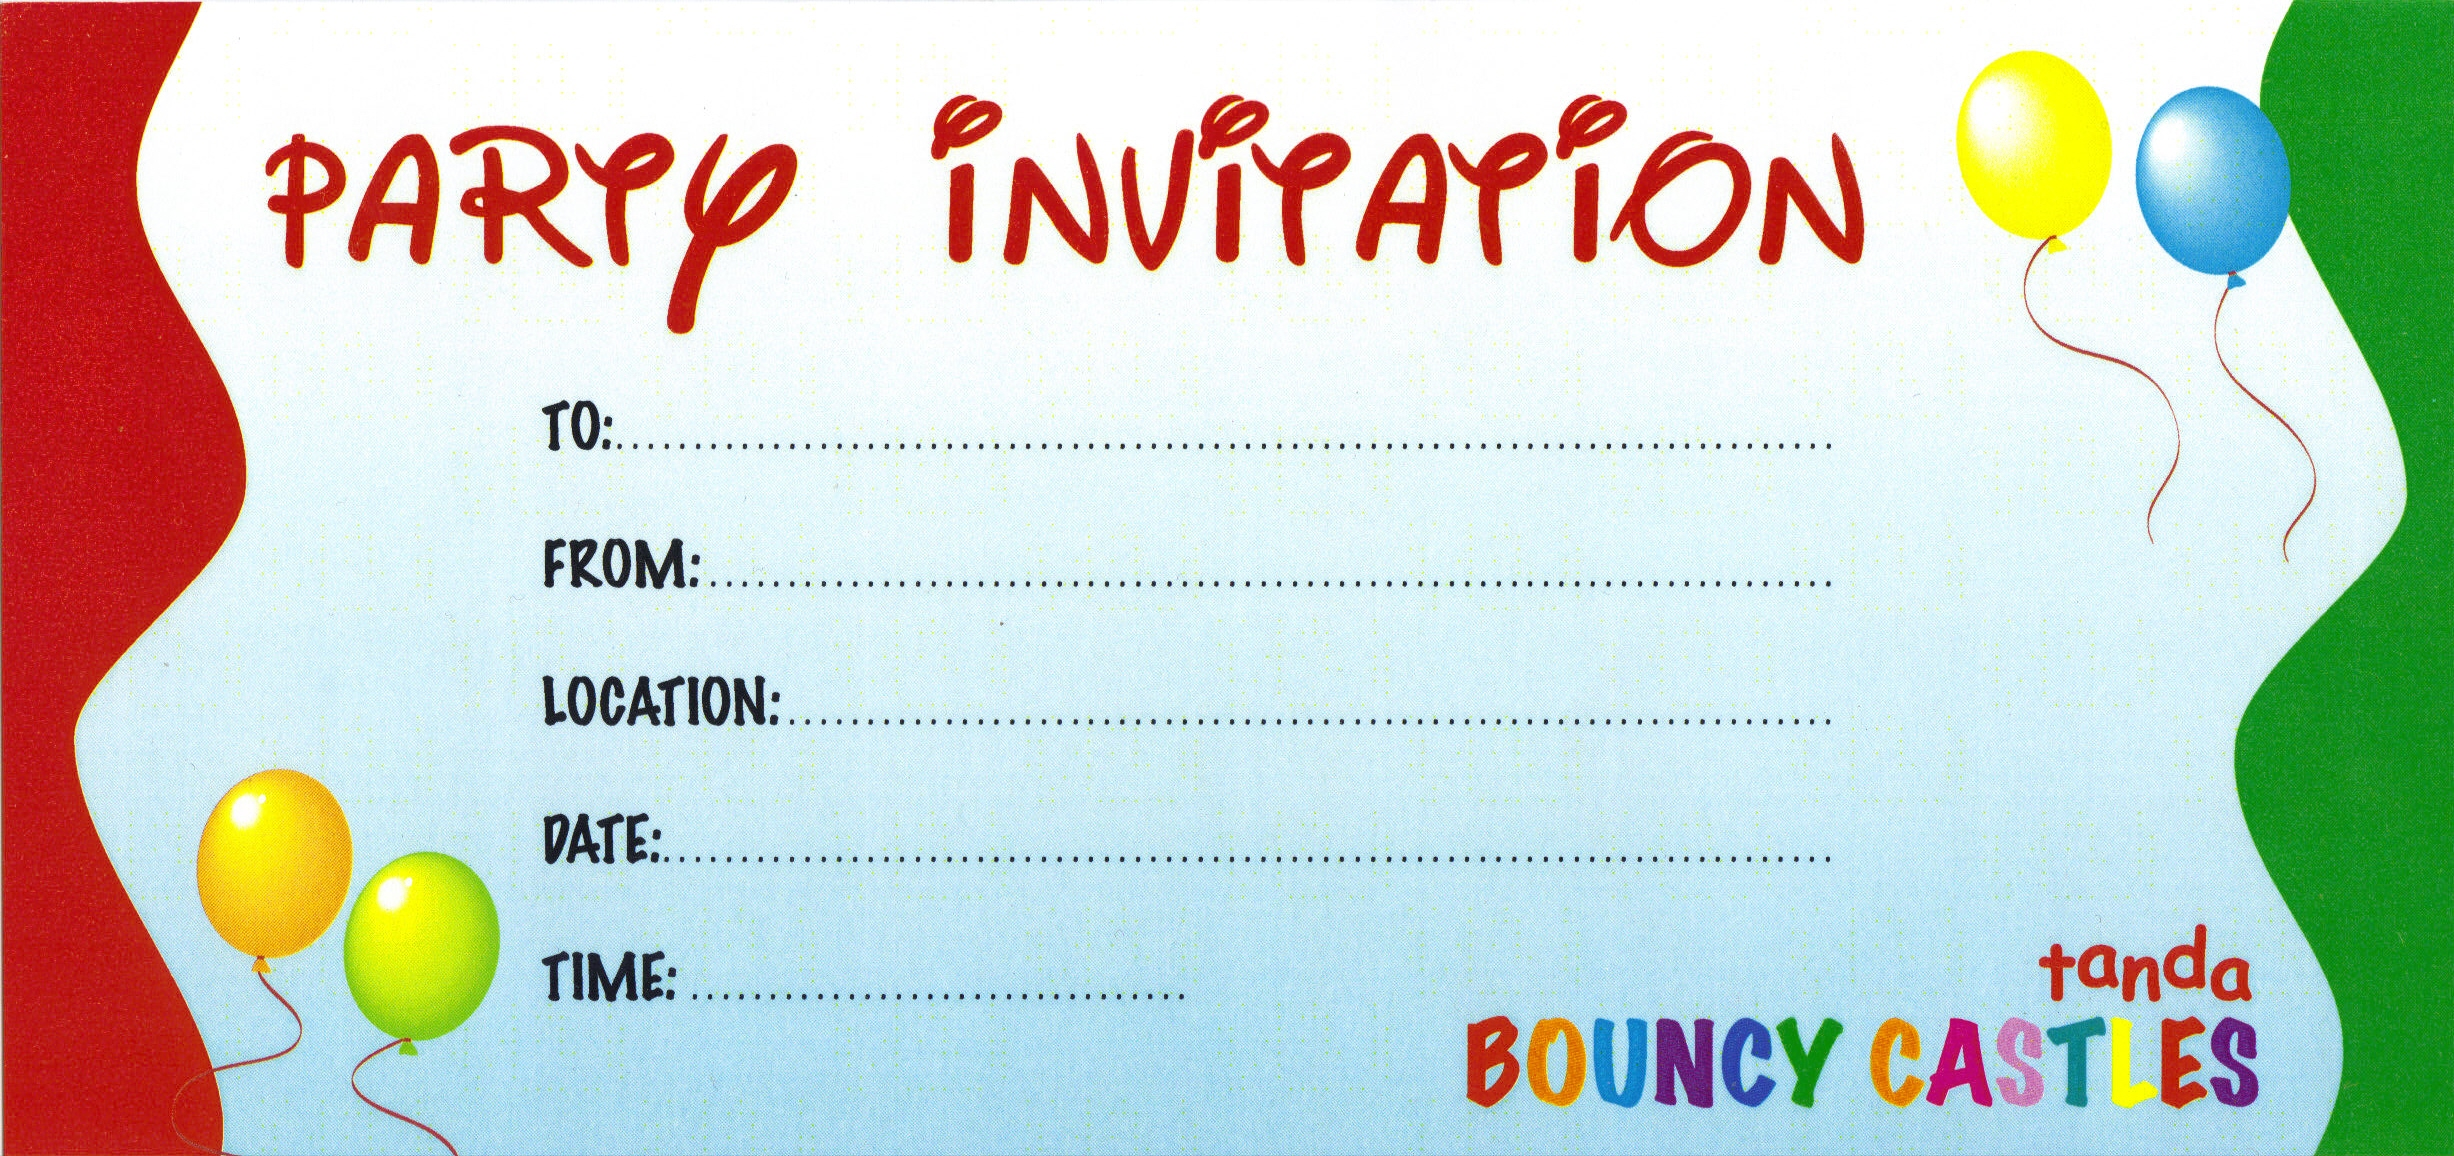 design birthday party invitations free ; free-party-invitations-to-design-your-own-Party-invitation-in-outstanding-styles